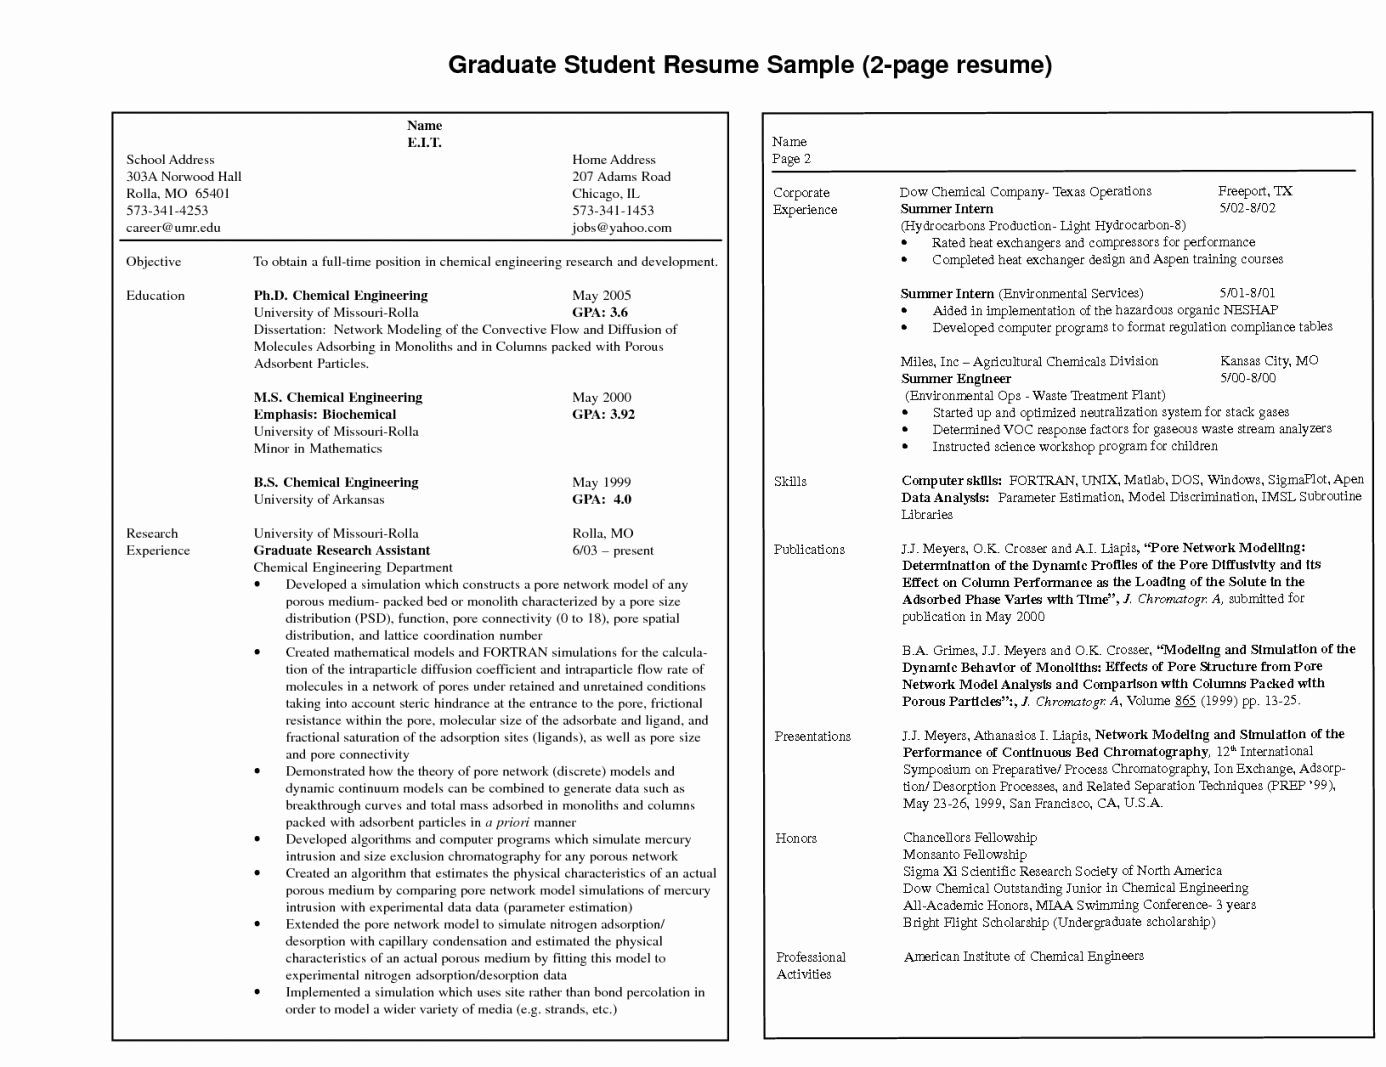 Two Page Resume Examples Beautiful Resume Examples 2 Pages Examples Pages Resume Resumeexamples 4 Good Resume Examples Resume Template Examples Resume Examples